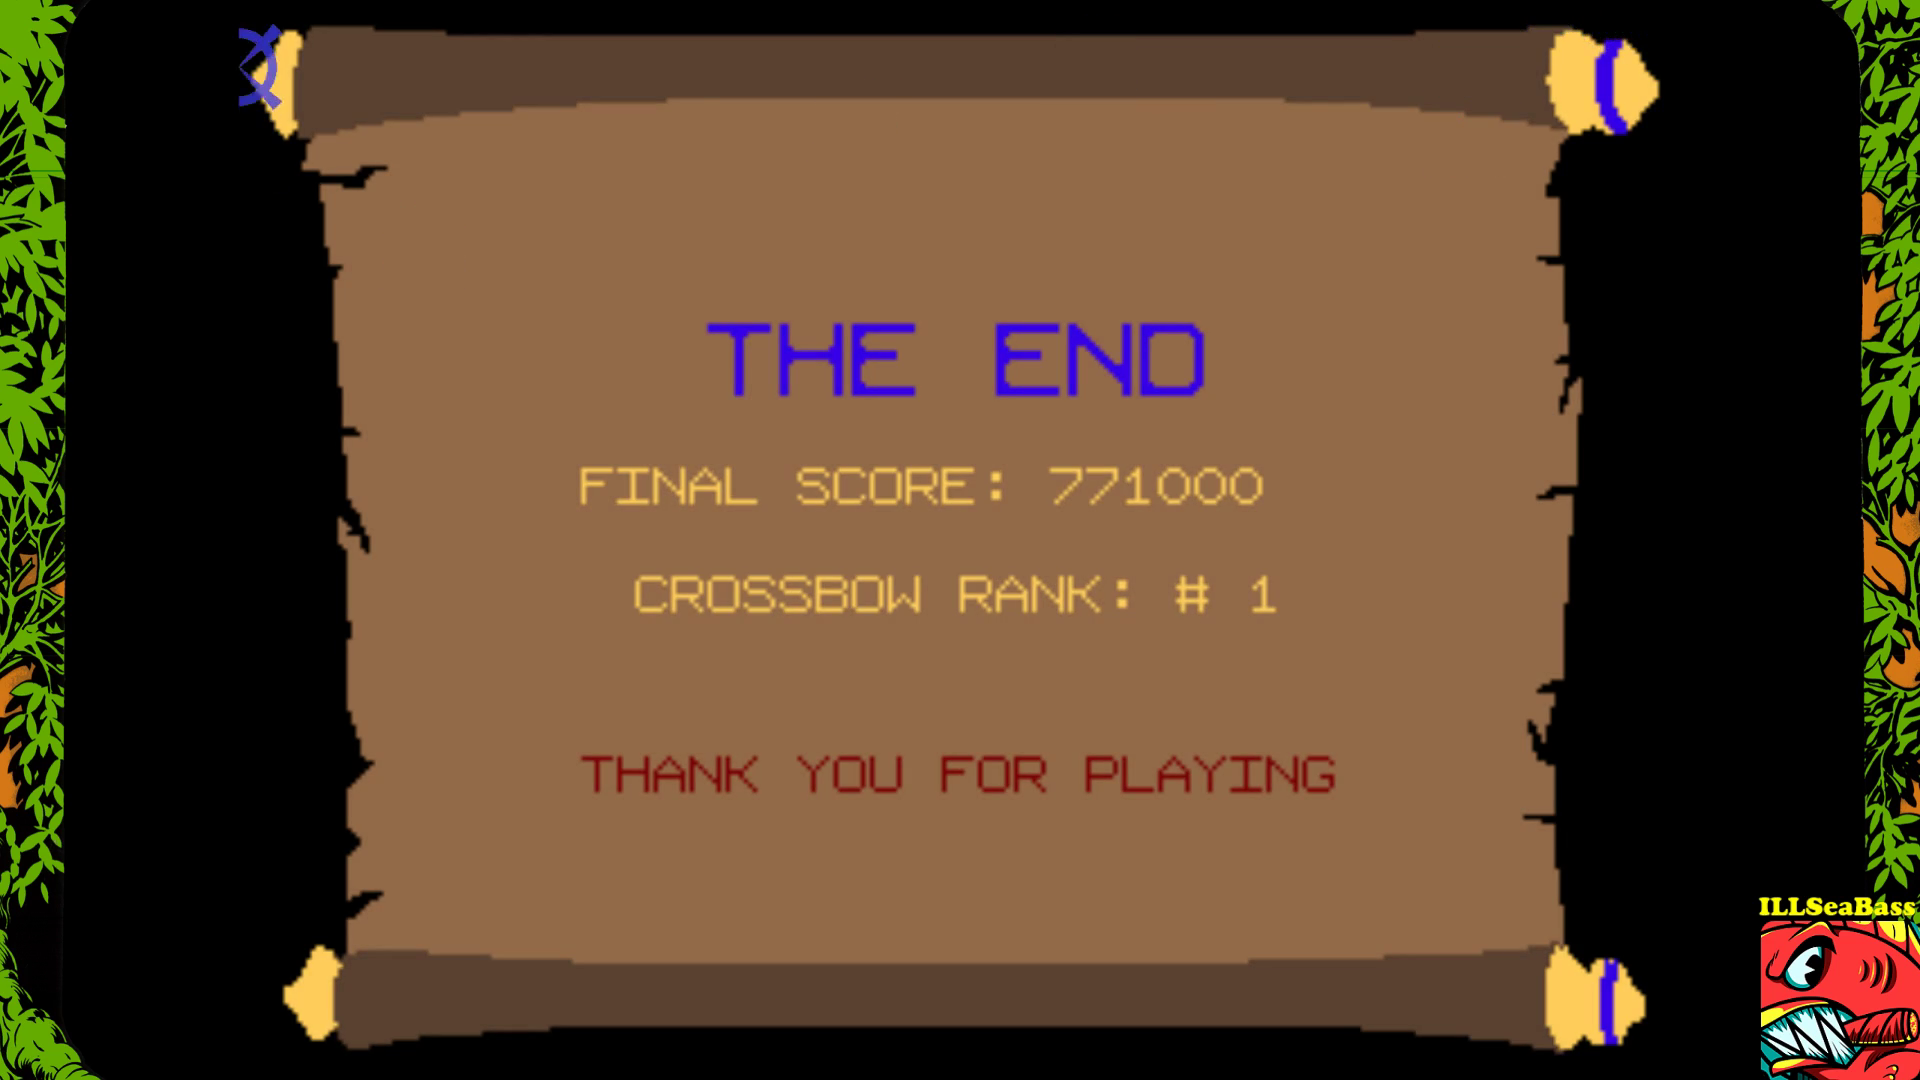 ILLSeaBass: Crossbow [crossbow] (Arcade Emulated / M.A.M.E.) 771,000 points on 2017-09-14 19:29:32